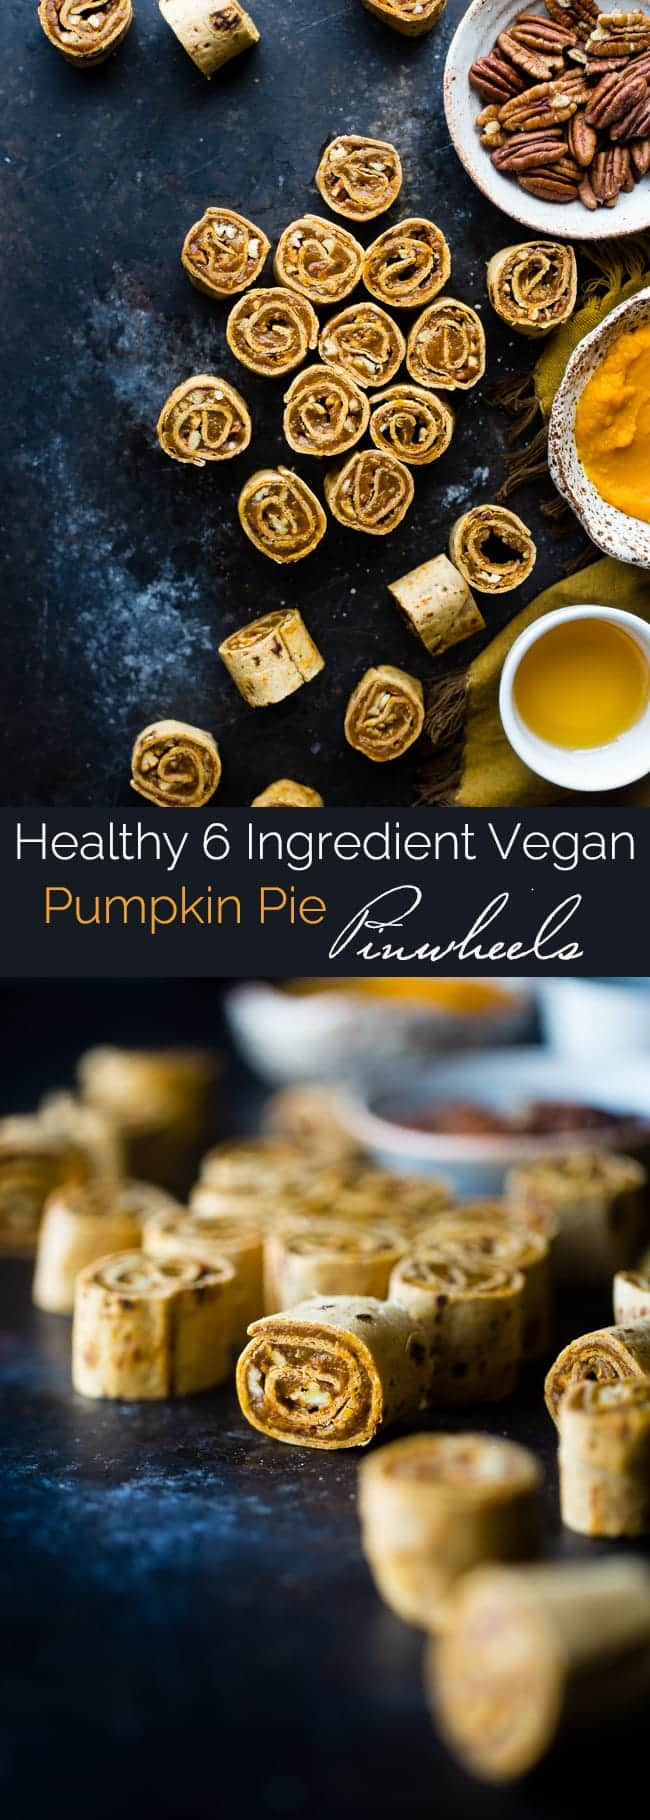 6 Ingredient Vegan Pumpkin Pie Pinwheels - These healthy pumpkin pie pinwheels are only 6 ingredients, under 200 calories and are ready in 20 minutes! They're an easy snack or party food for fall! Gluten free option included! | Foodfaithfitness.com | @FoodFaithFit